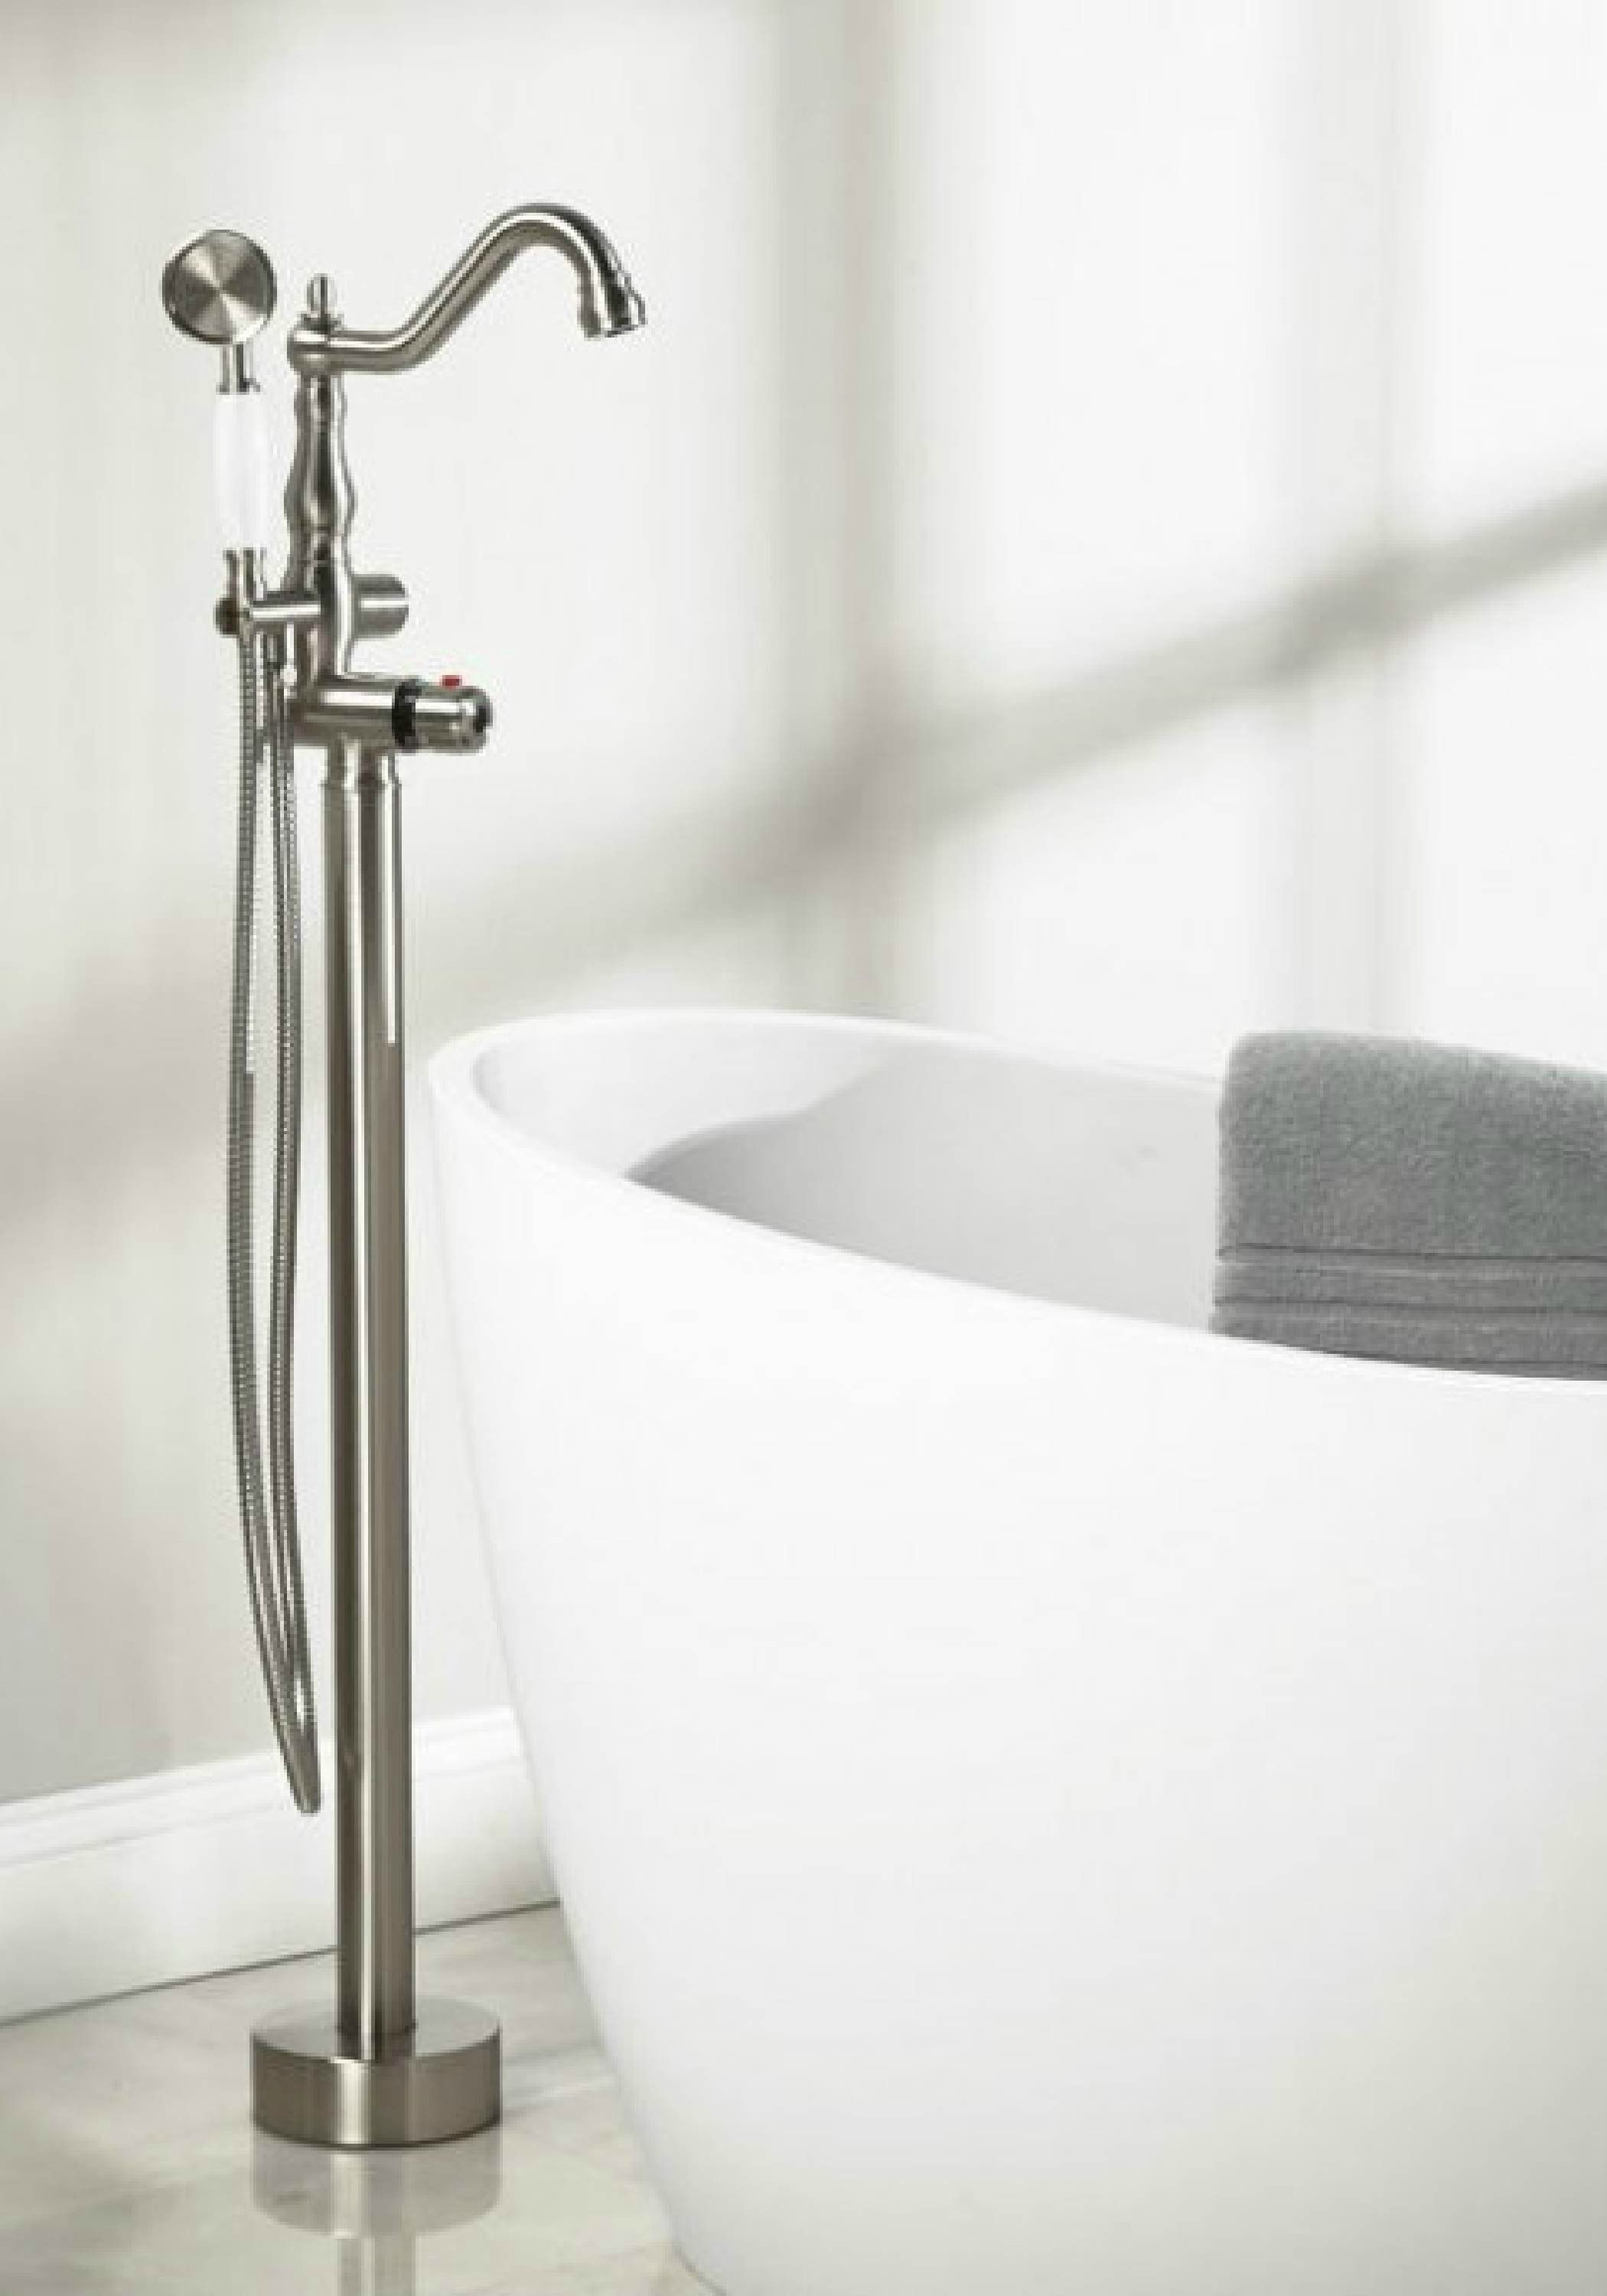 Traditional Meets Contemporary Design In This Tub Faucet By